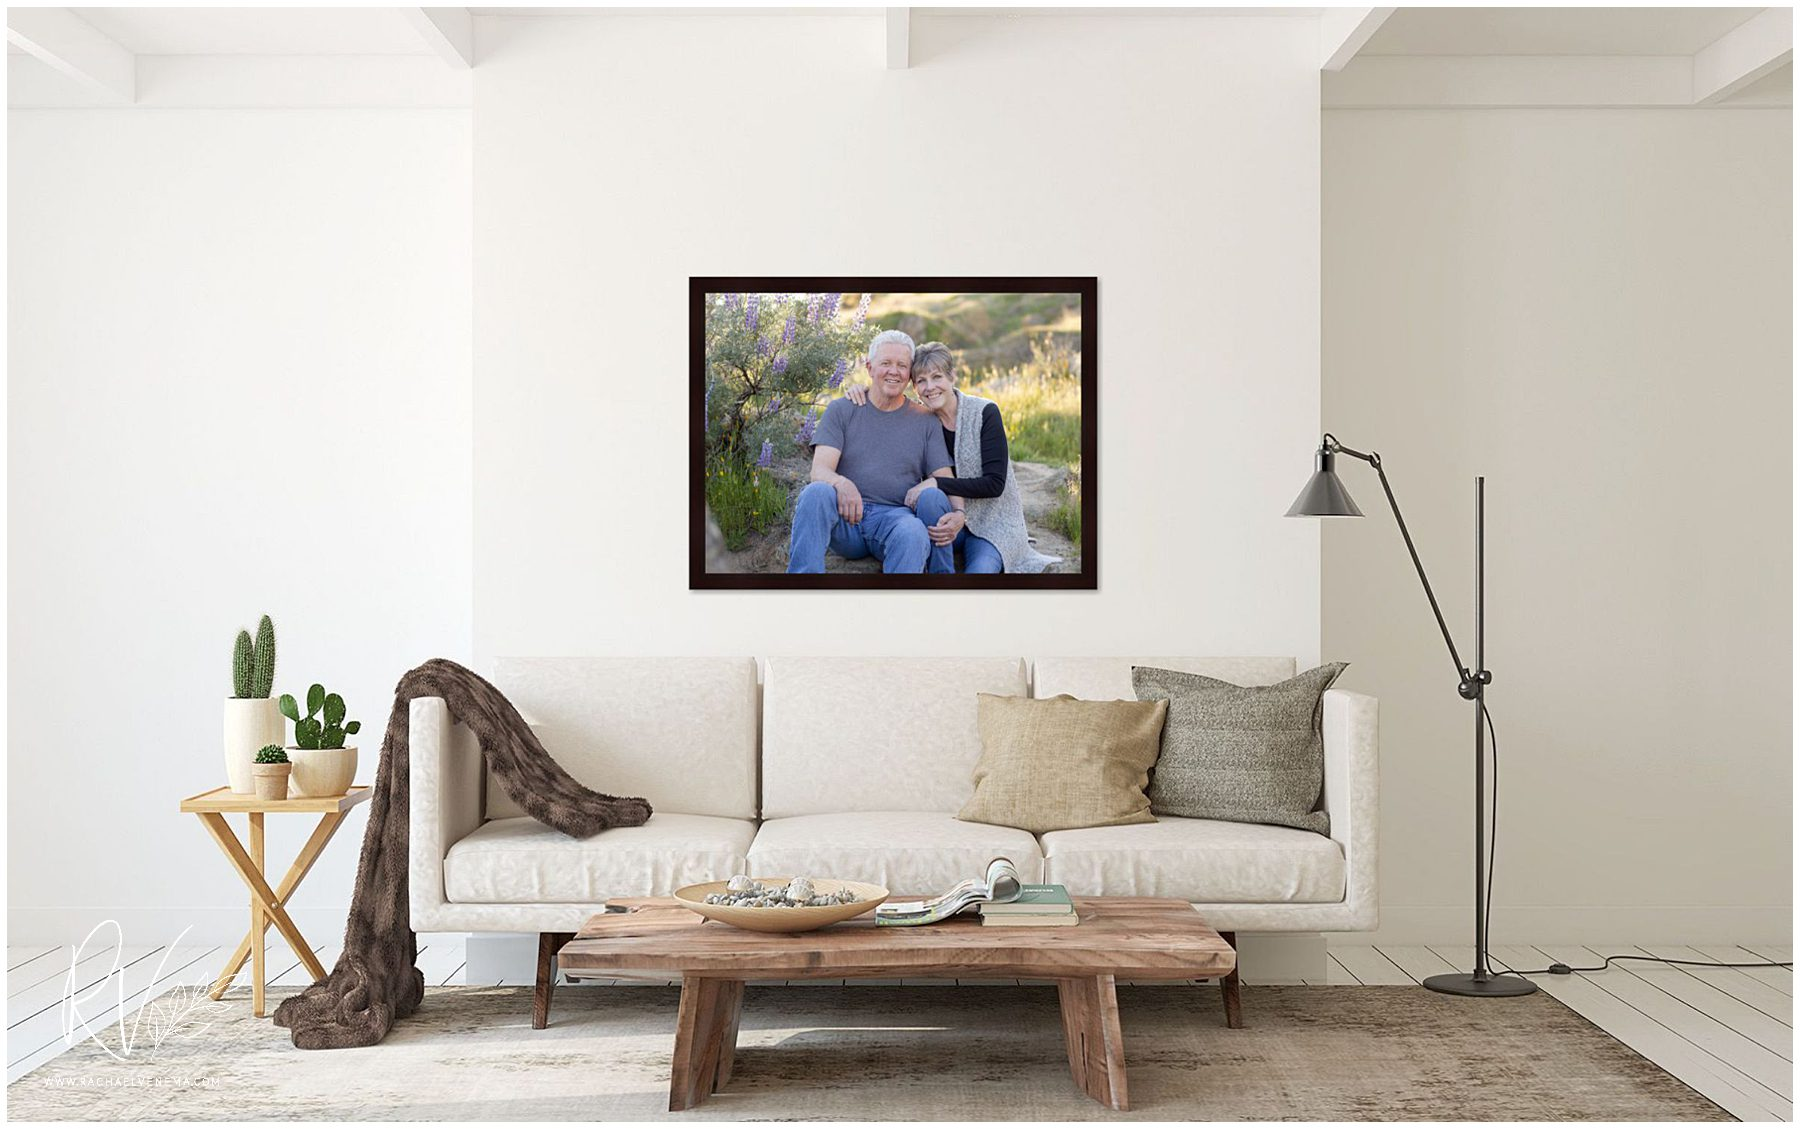 learn the 5 steps to create your dream gallery wall with family photographer Rachael Venema